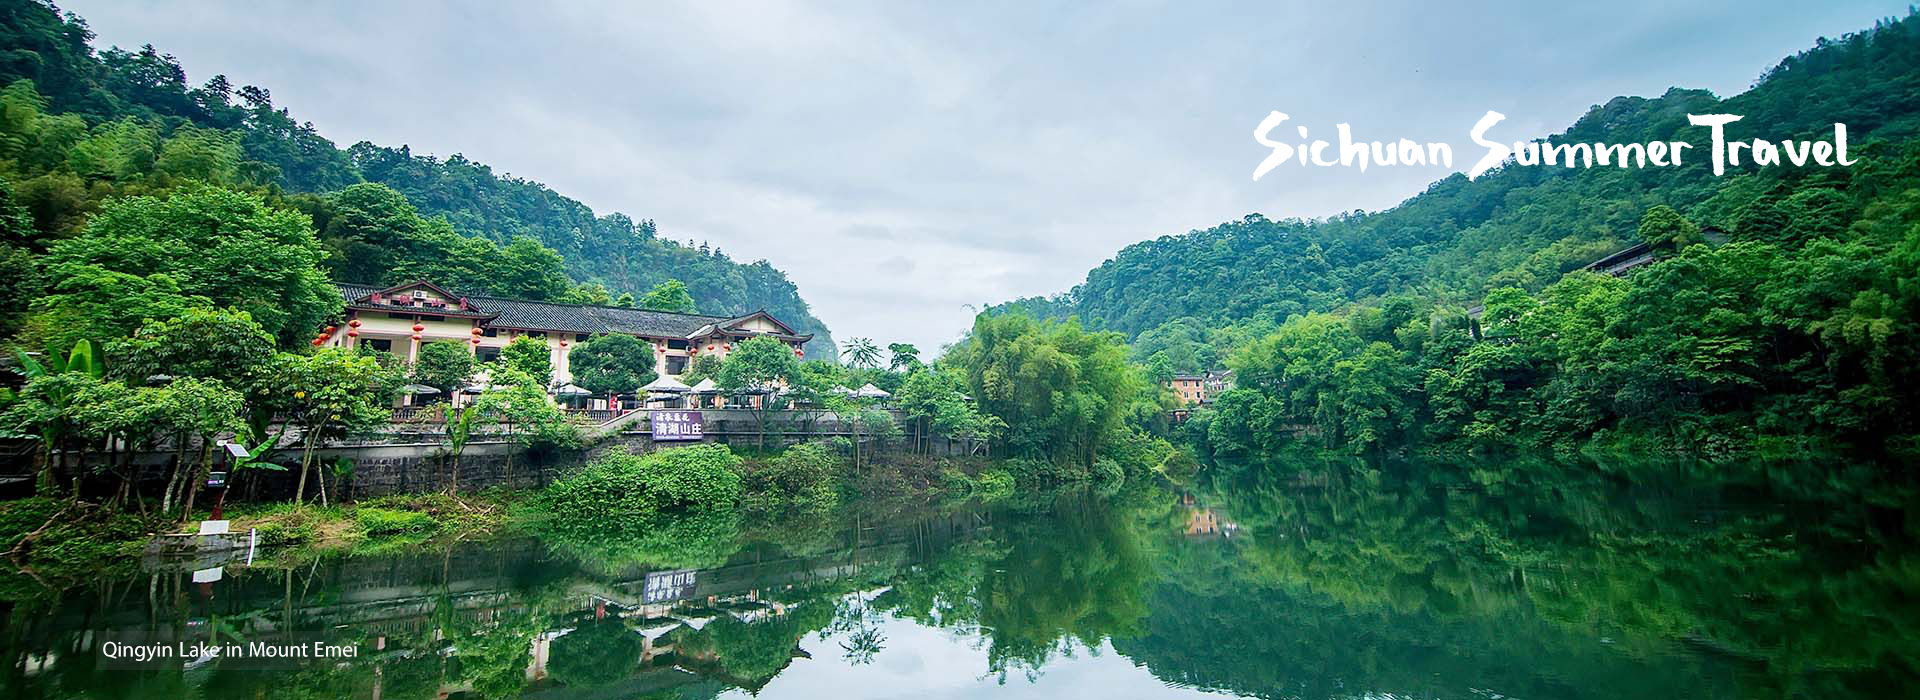 Best Places To Visit in Sichuan in Summer